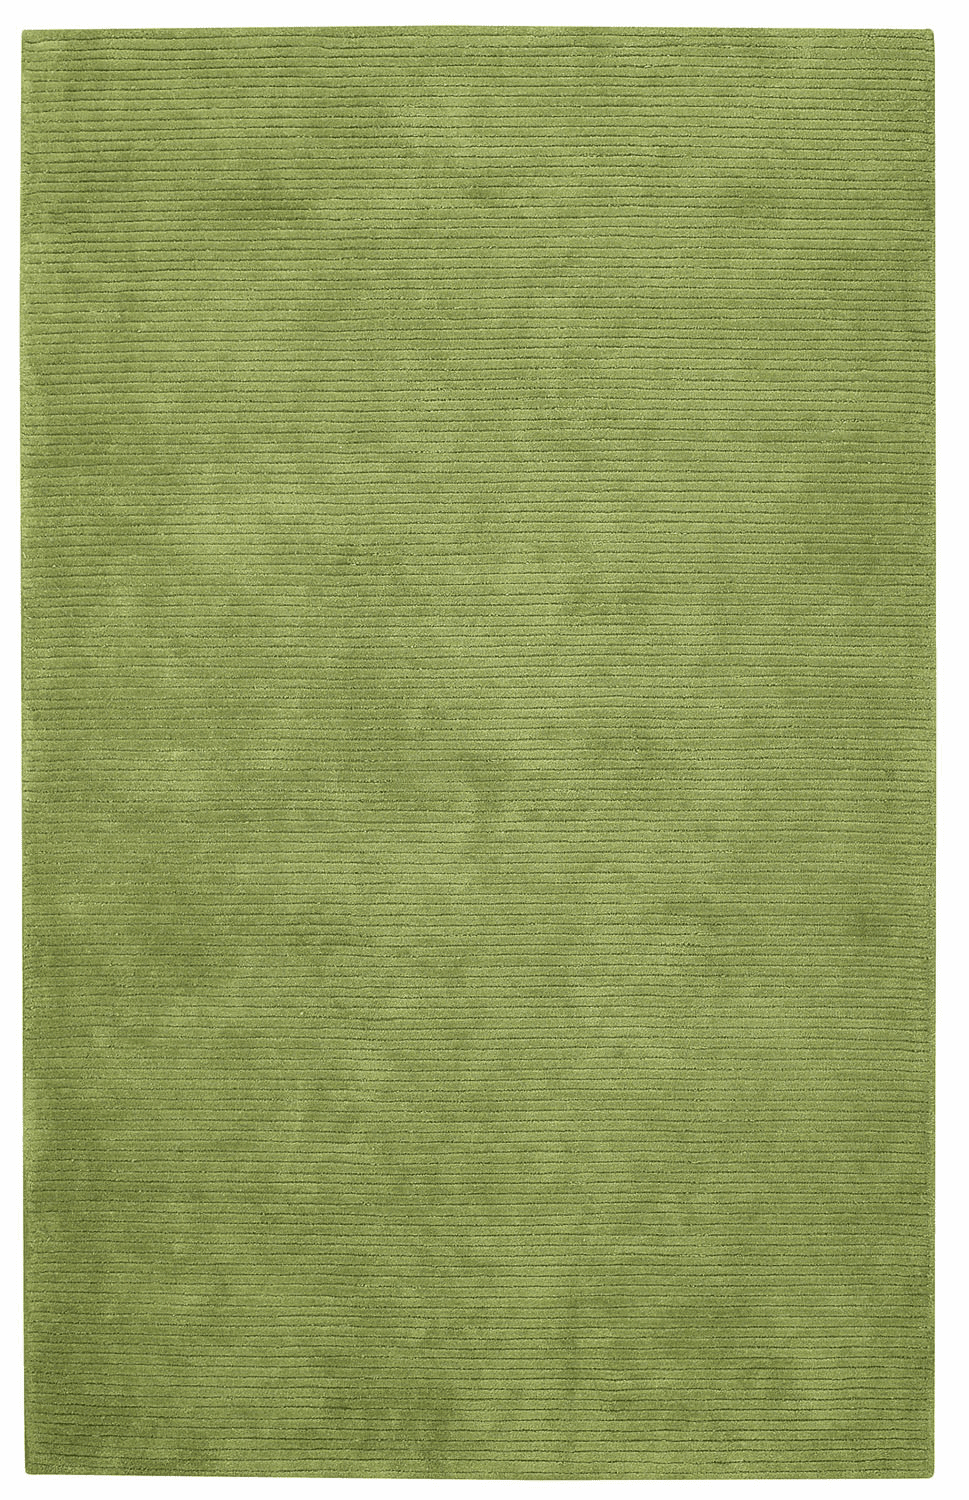 Hand Tufted Granny Smith Apple Rug